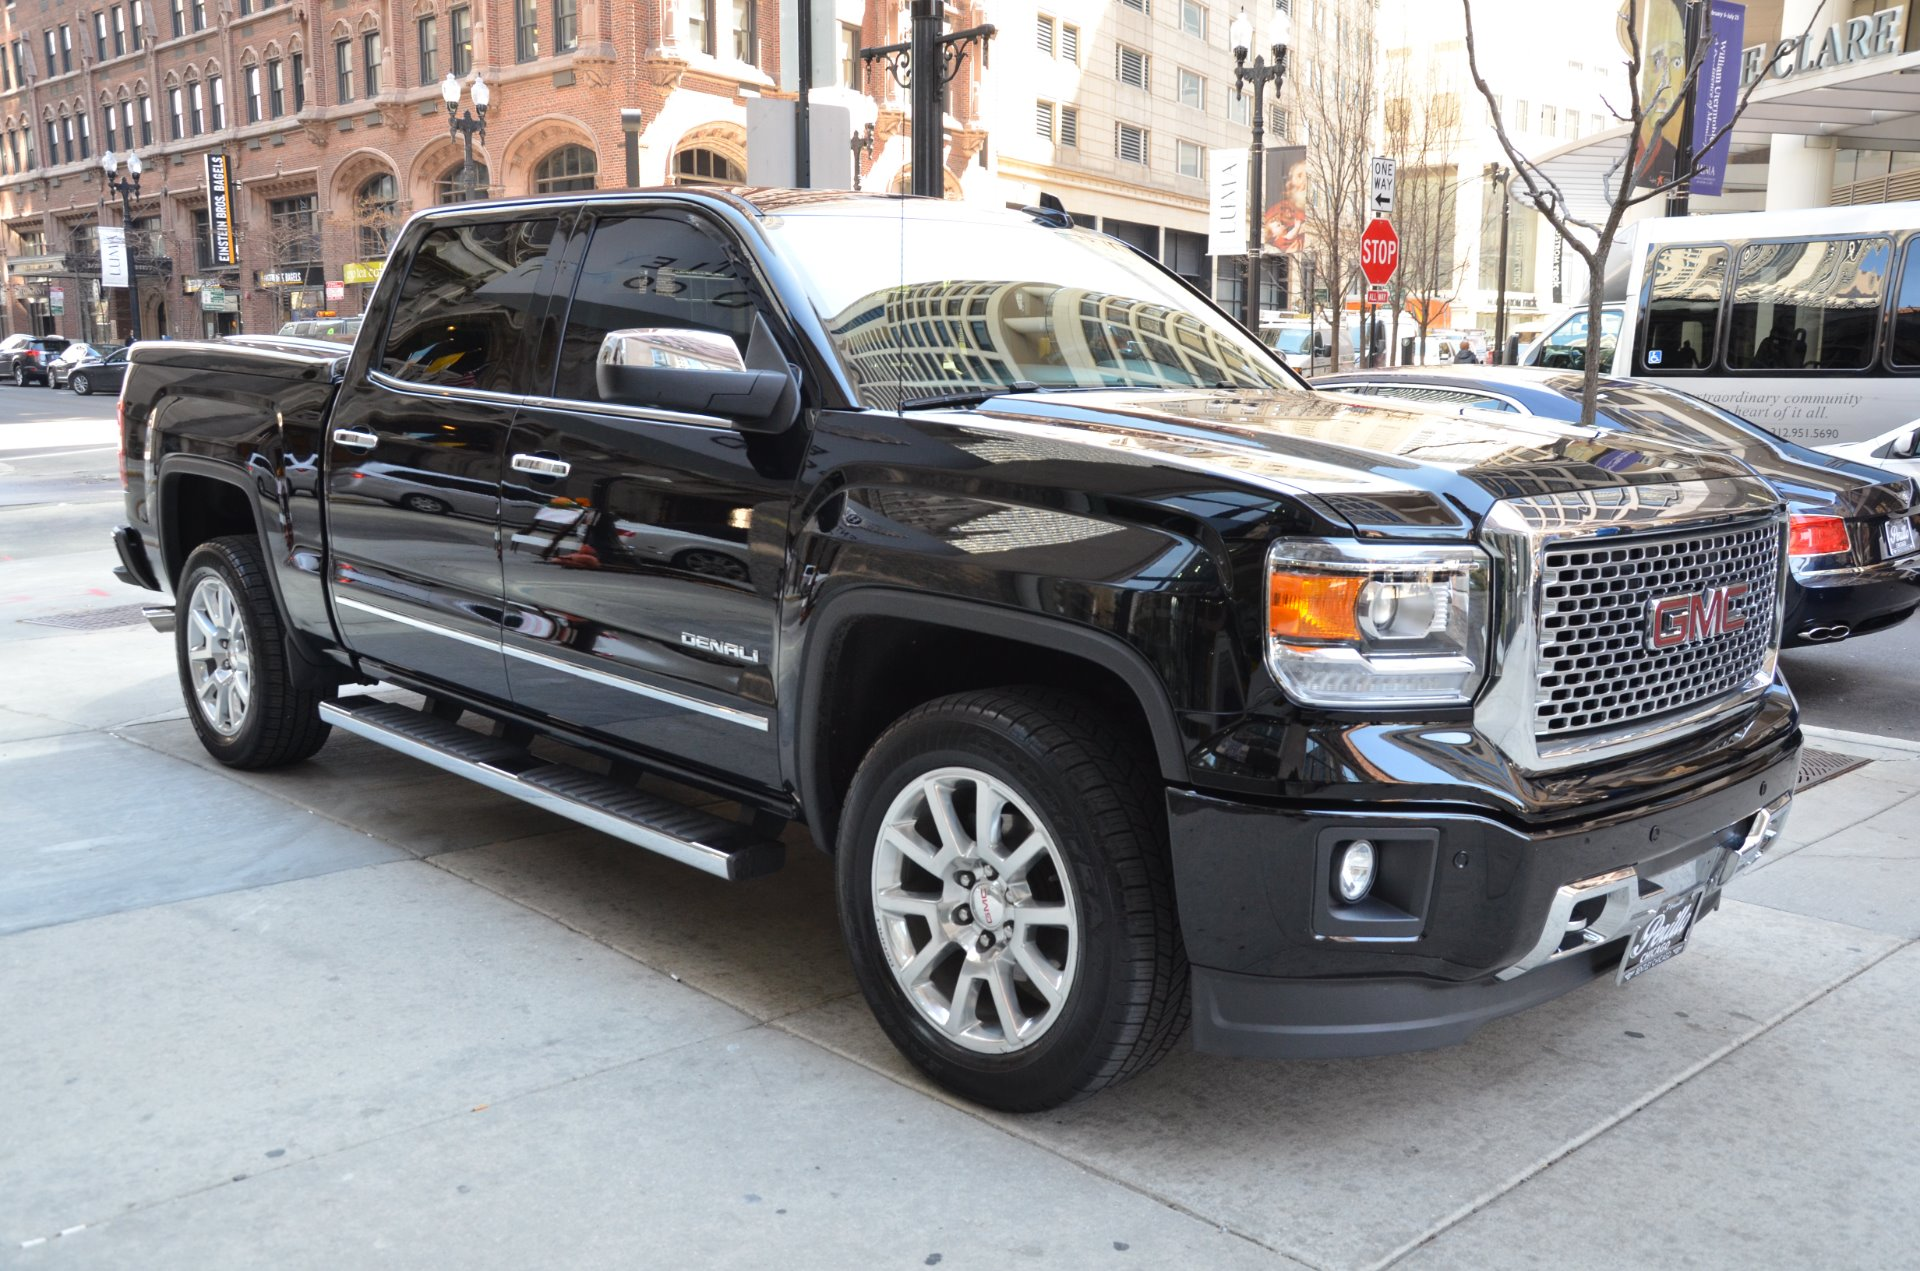 industry cc newsletter gmc road green test our subscribe news sale for to denali sierra